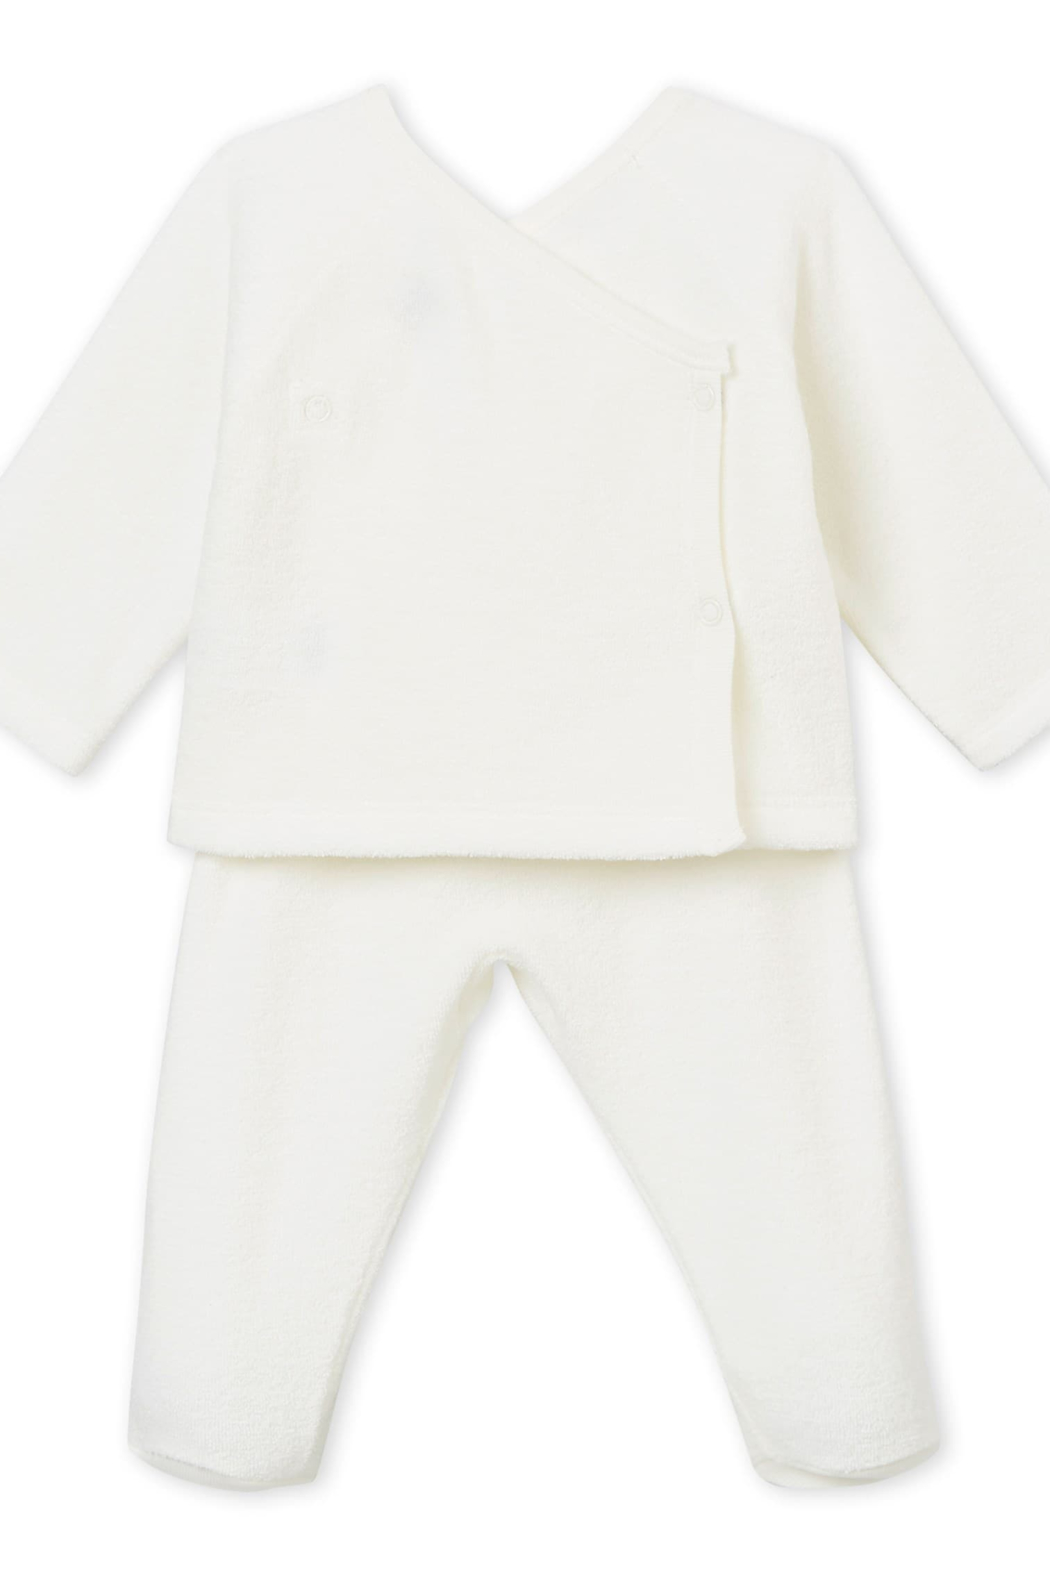 Petit Bateau PETIT BATEAU INFANT TWO PIECE BABY SET IN BRUSHED TOWELLING - Front Full Image